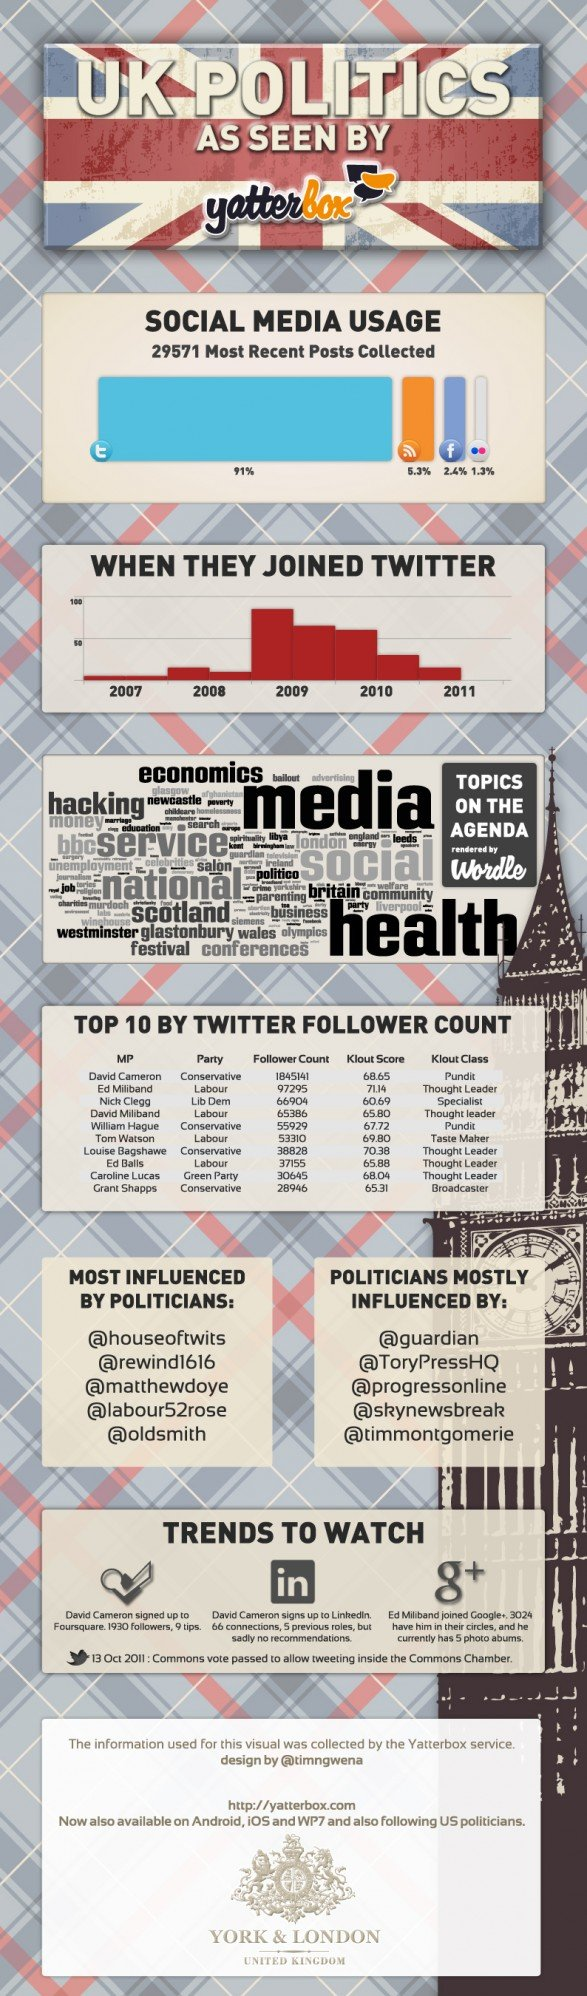 Social media in UK politics infographic